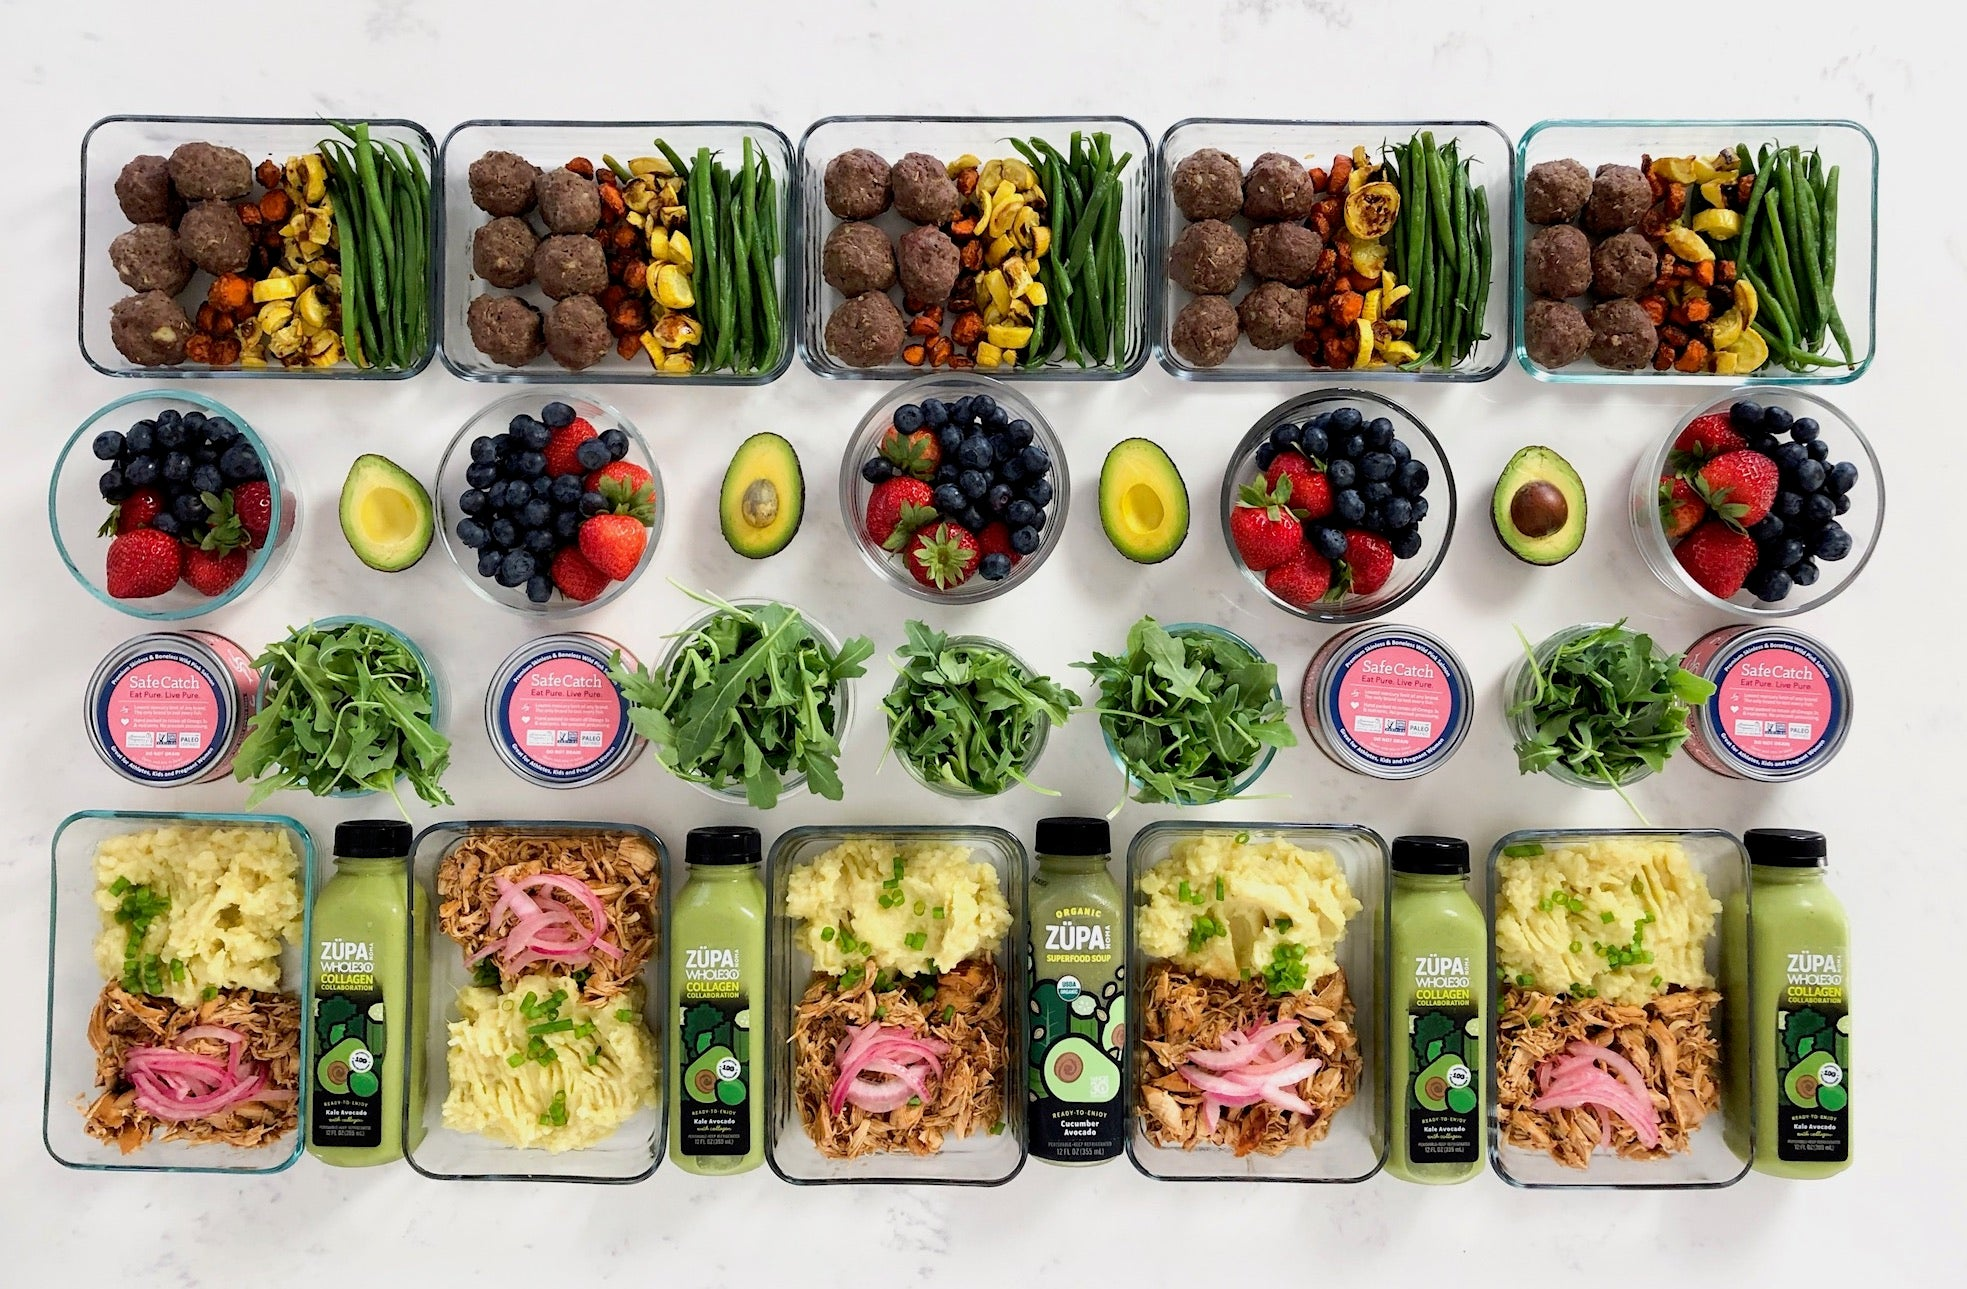 ZUPA x @WHOLEDAILYLIFE Guide to Whole30 Meal Prep